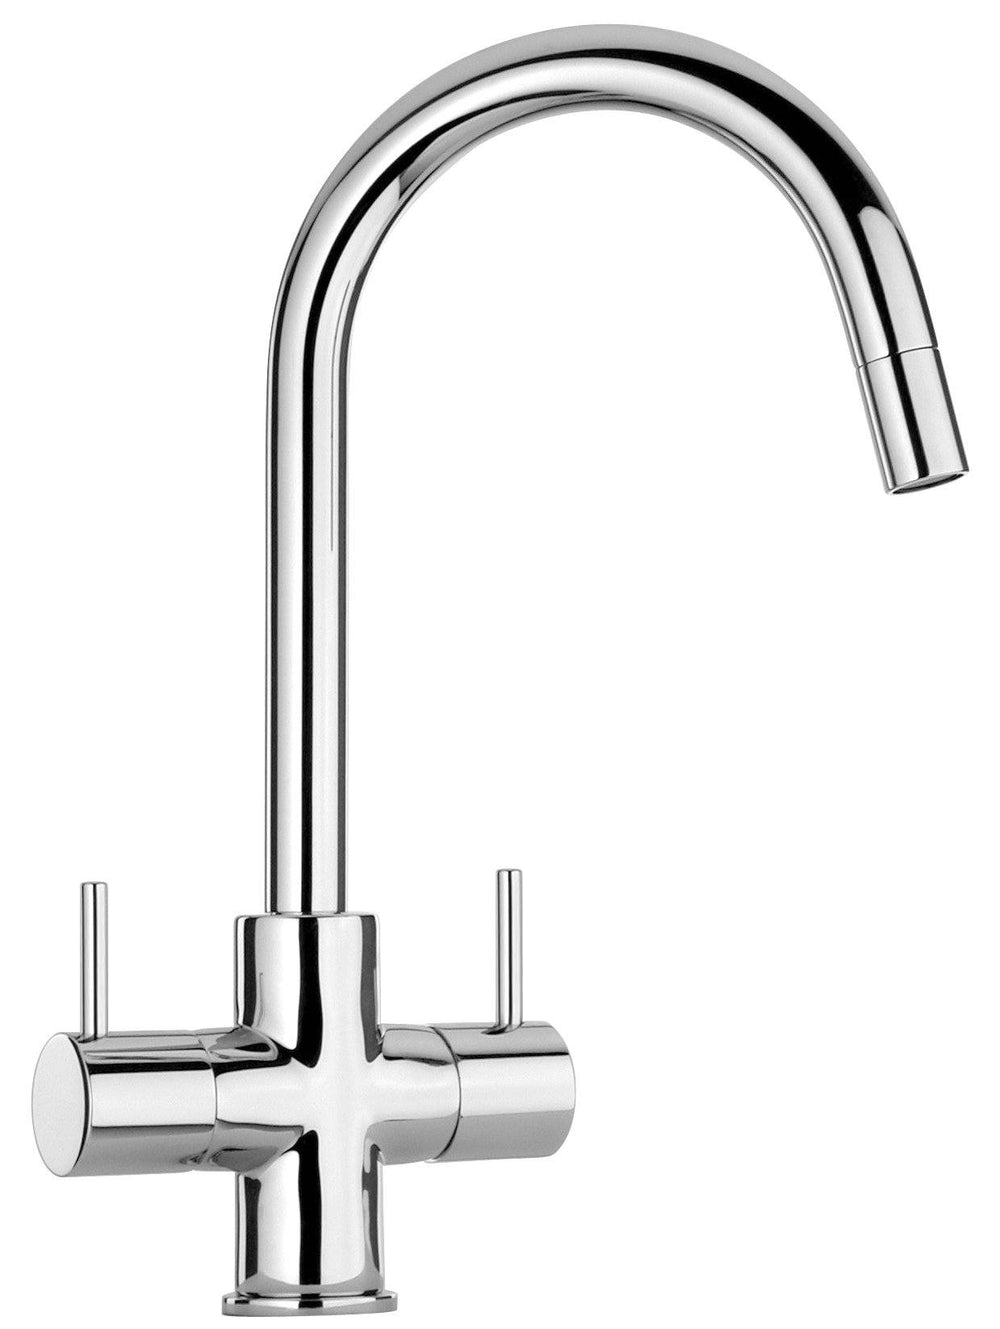 Latoscana Two Handle Pull-Down Kitchen Faucet In Chrome Finish Kitchen faucet Latoscana